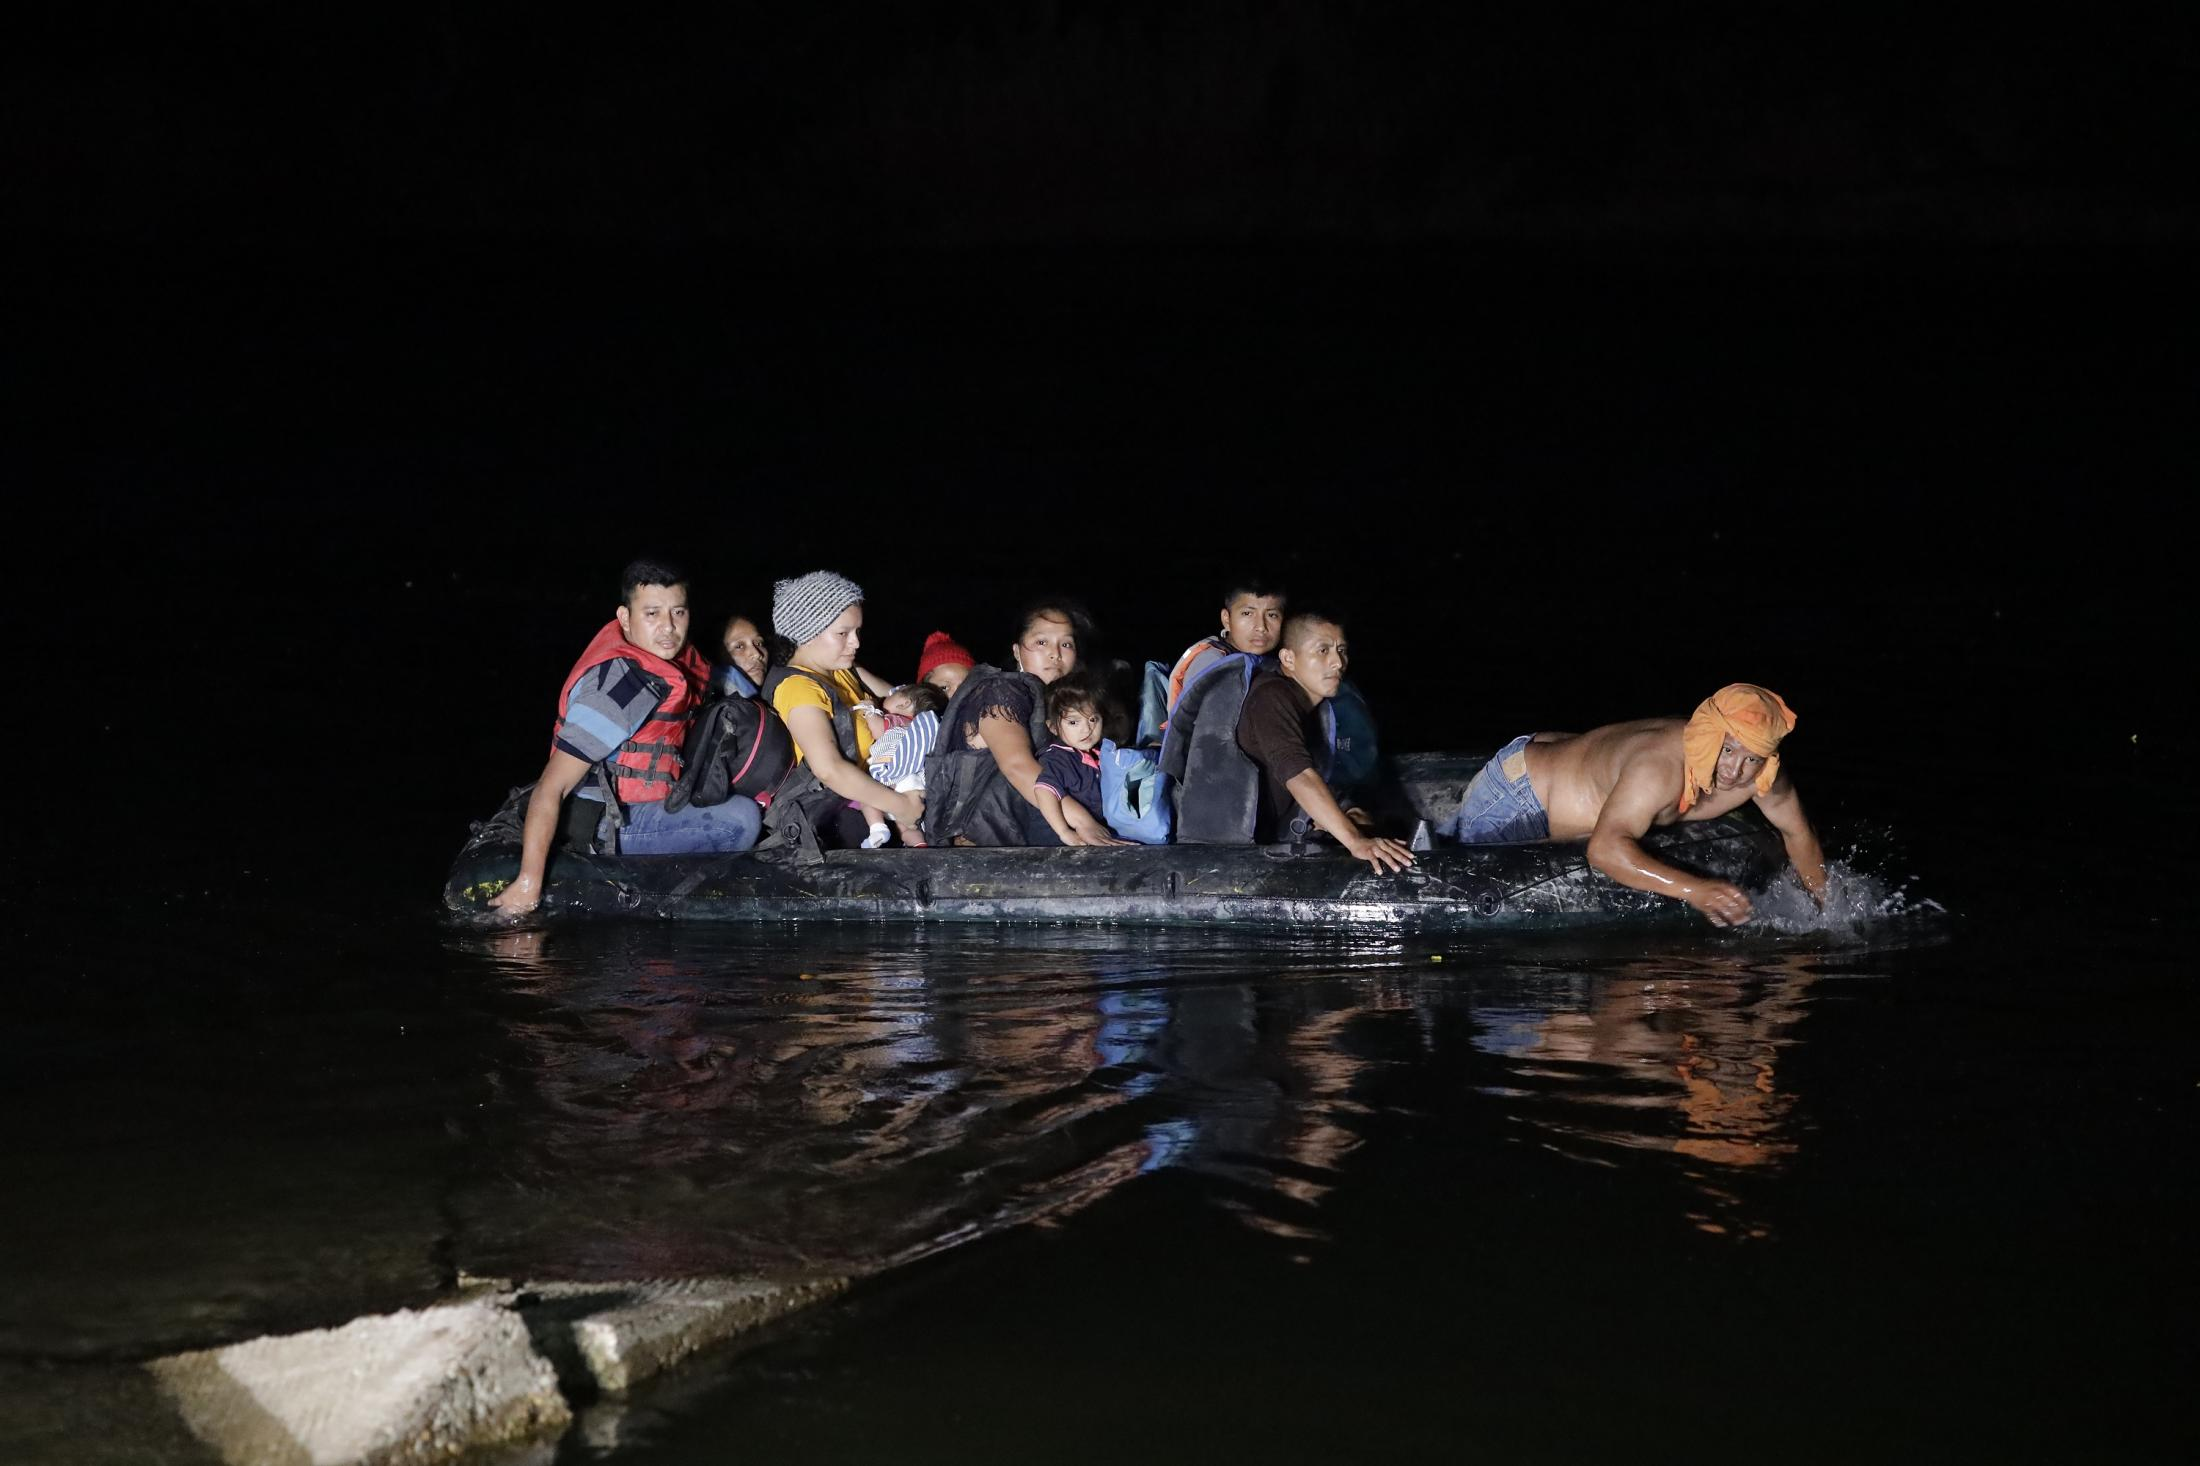 During the night on Wednesday 14, 2020, over 200 migrants came to the shores of Roma, TX via inflatable rafts. Men, women and children came from Honduras, Guatemala and El Salvador, escaping poverty, hunger, violence and COVID-19 and seeking a better life in the United States.